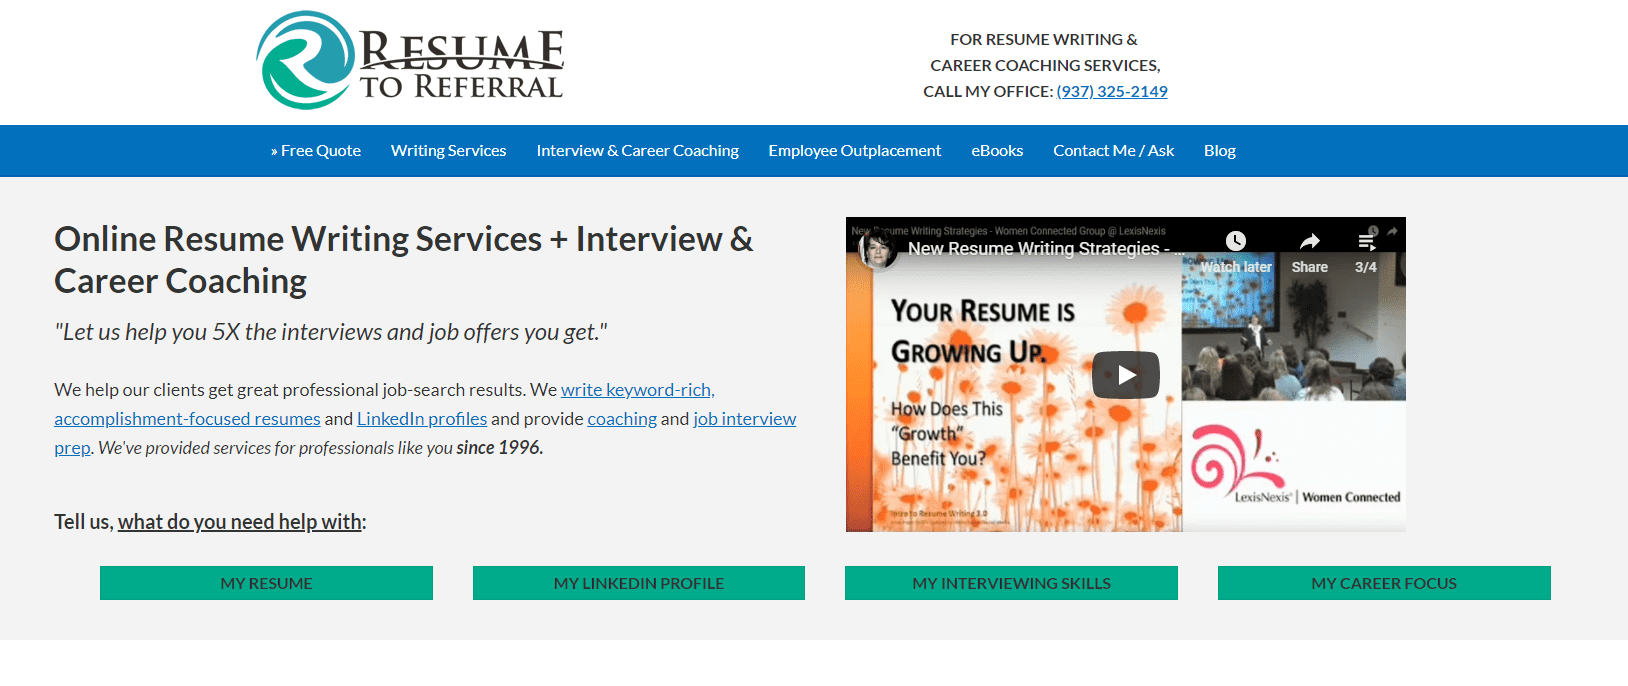 10 Best Military Resume Writing Services in 2020: No. 7 Resume to Referral